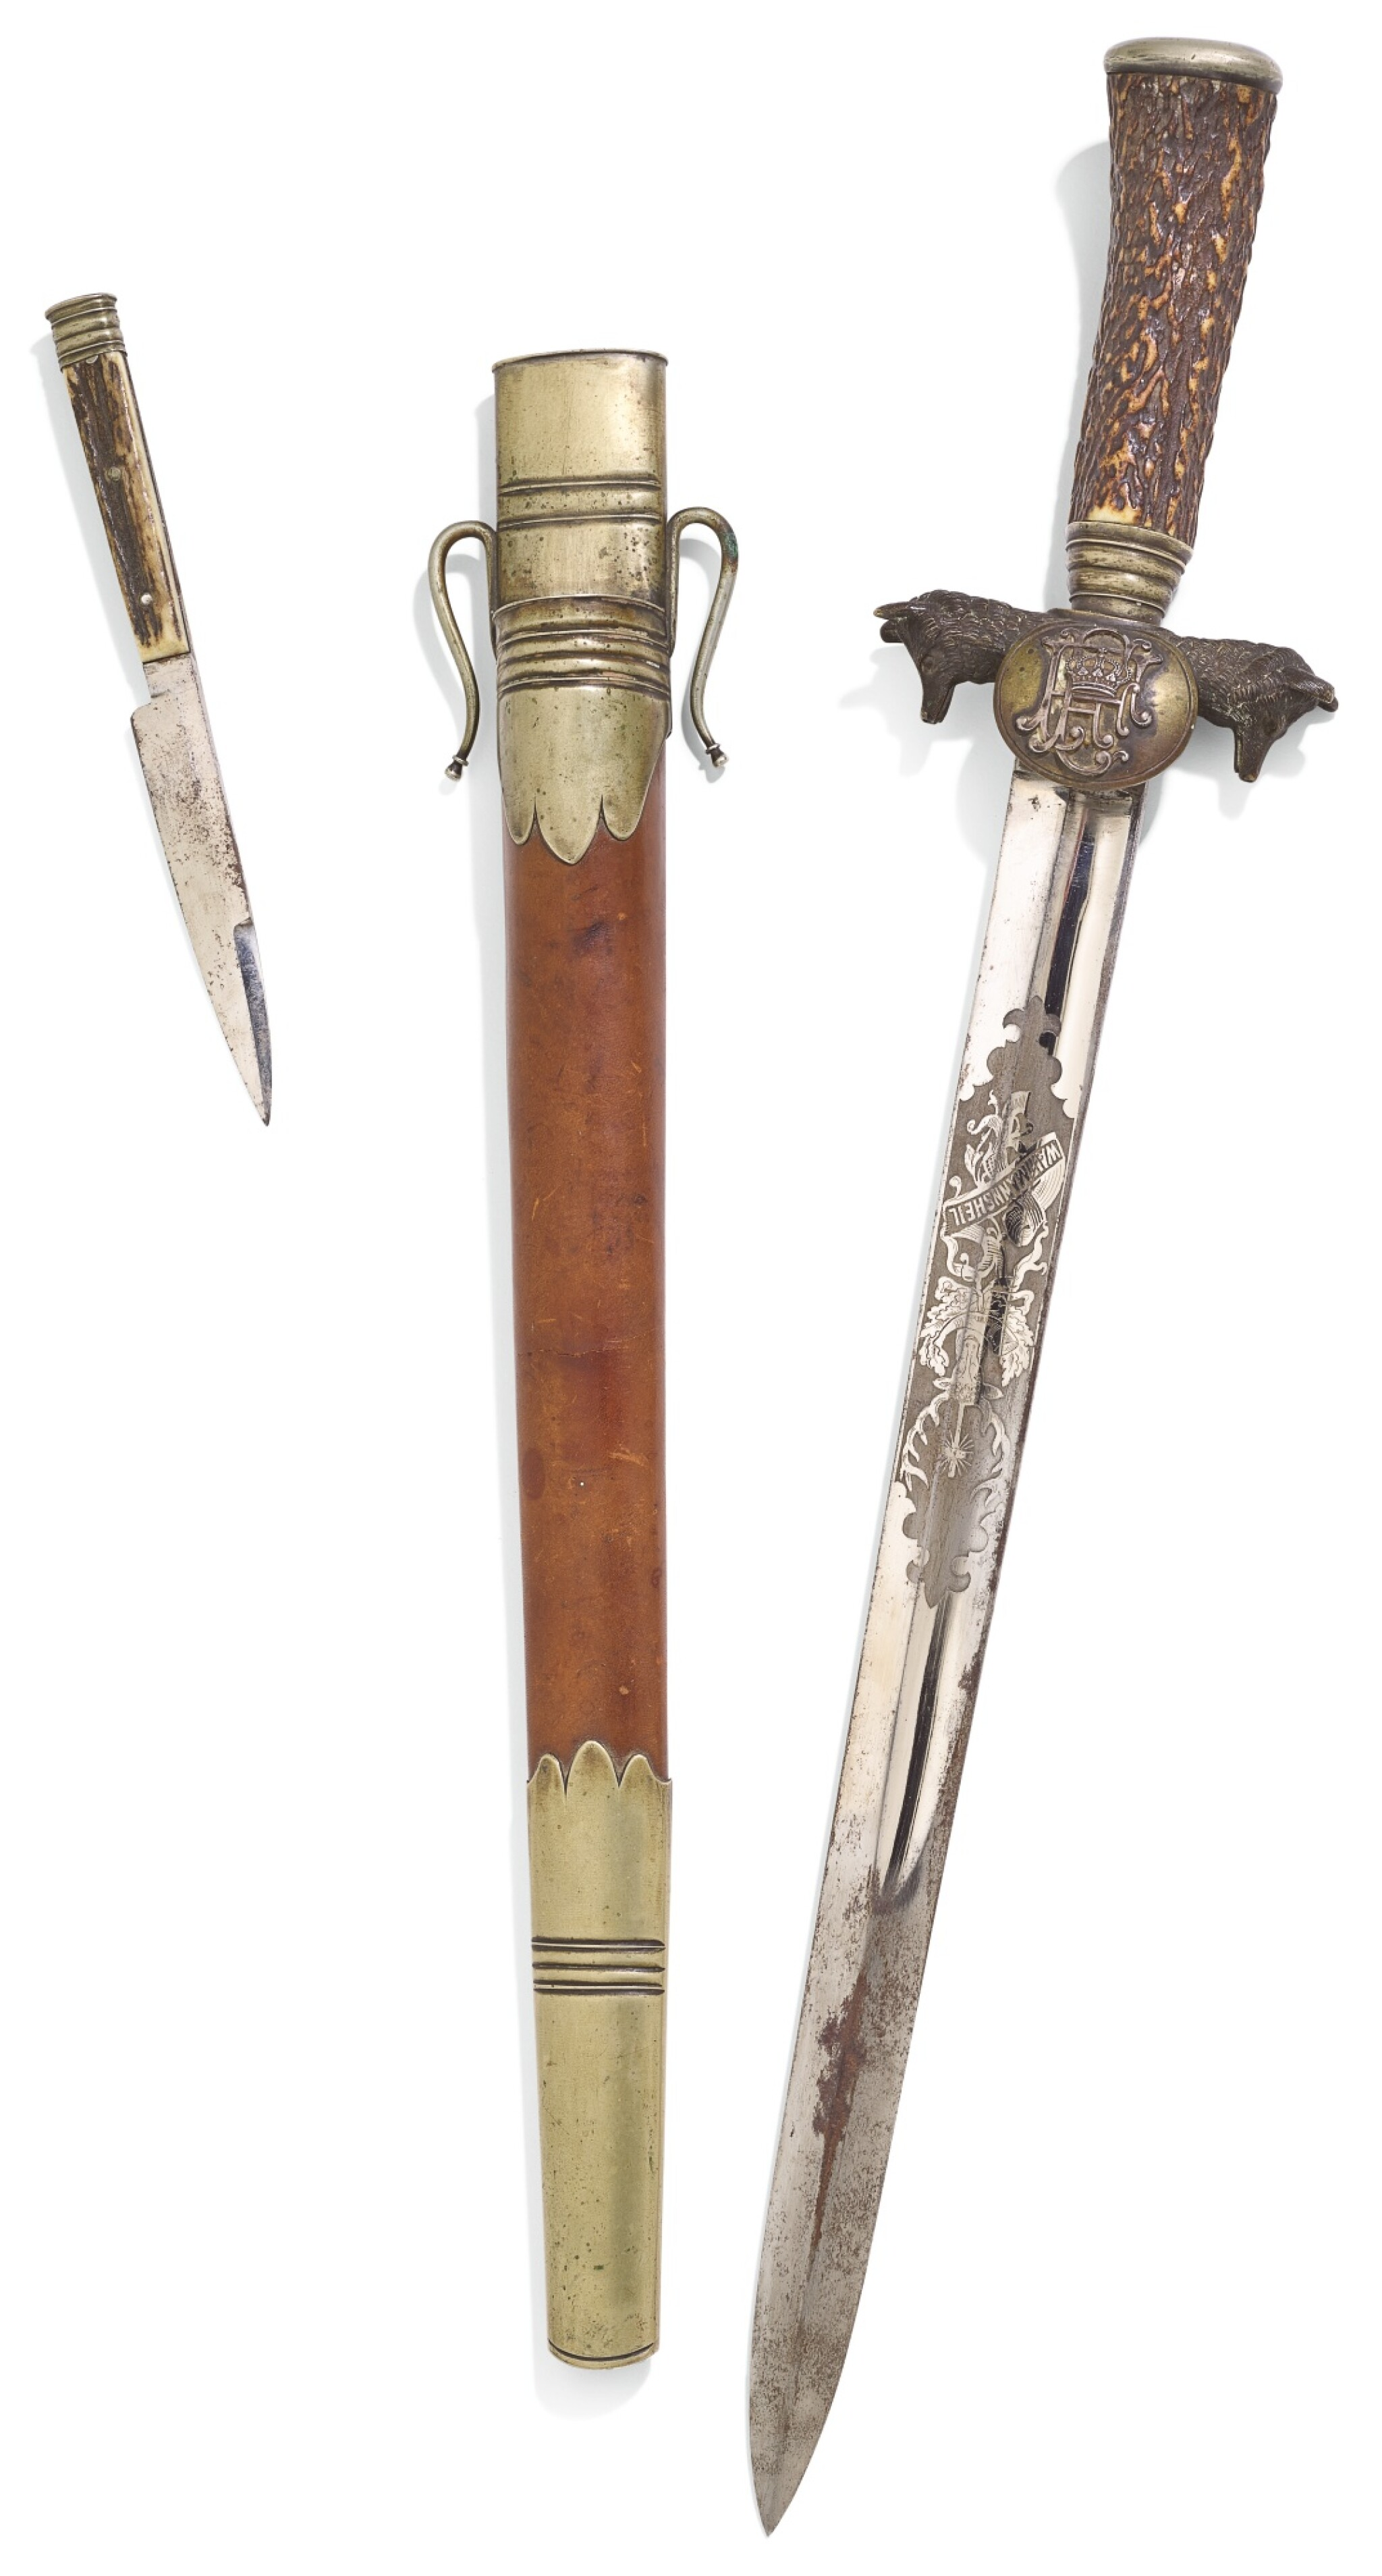 View full screen - View 1 of Lot 106. AN IMPERIAL PRESENTATION HUNTING SWORD, BY STANISLAUS STRIBERNY, VIENNA, CIRCA 1890.